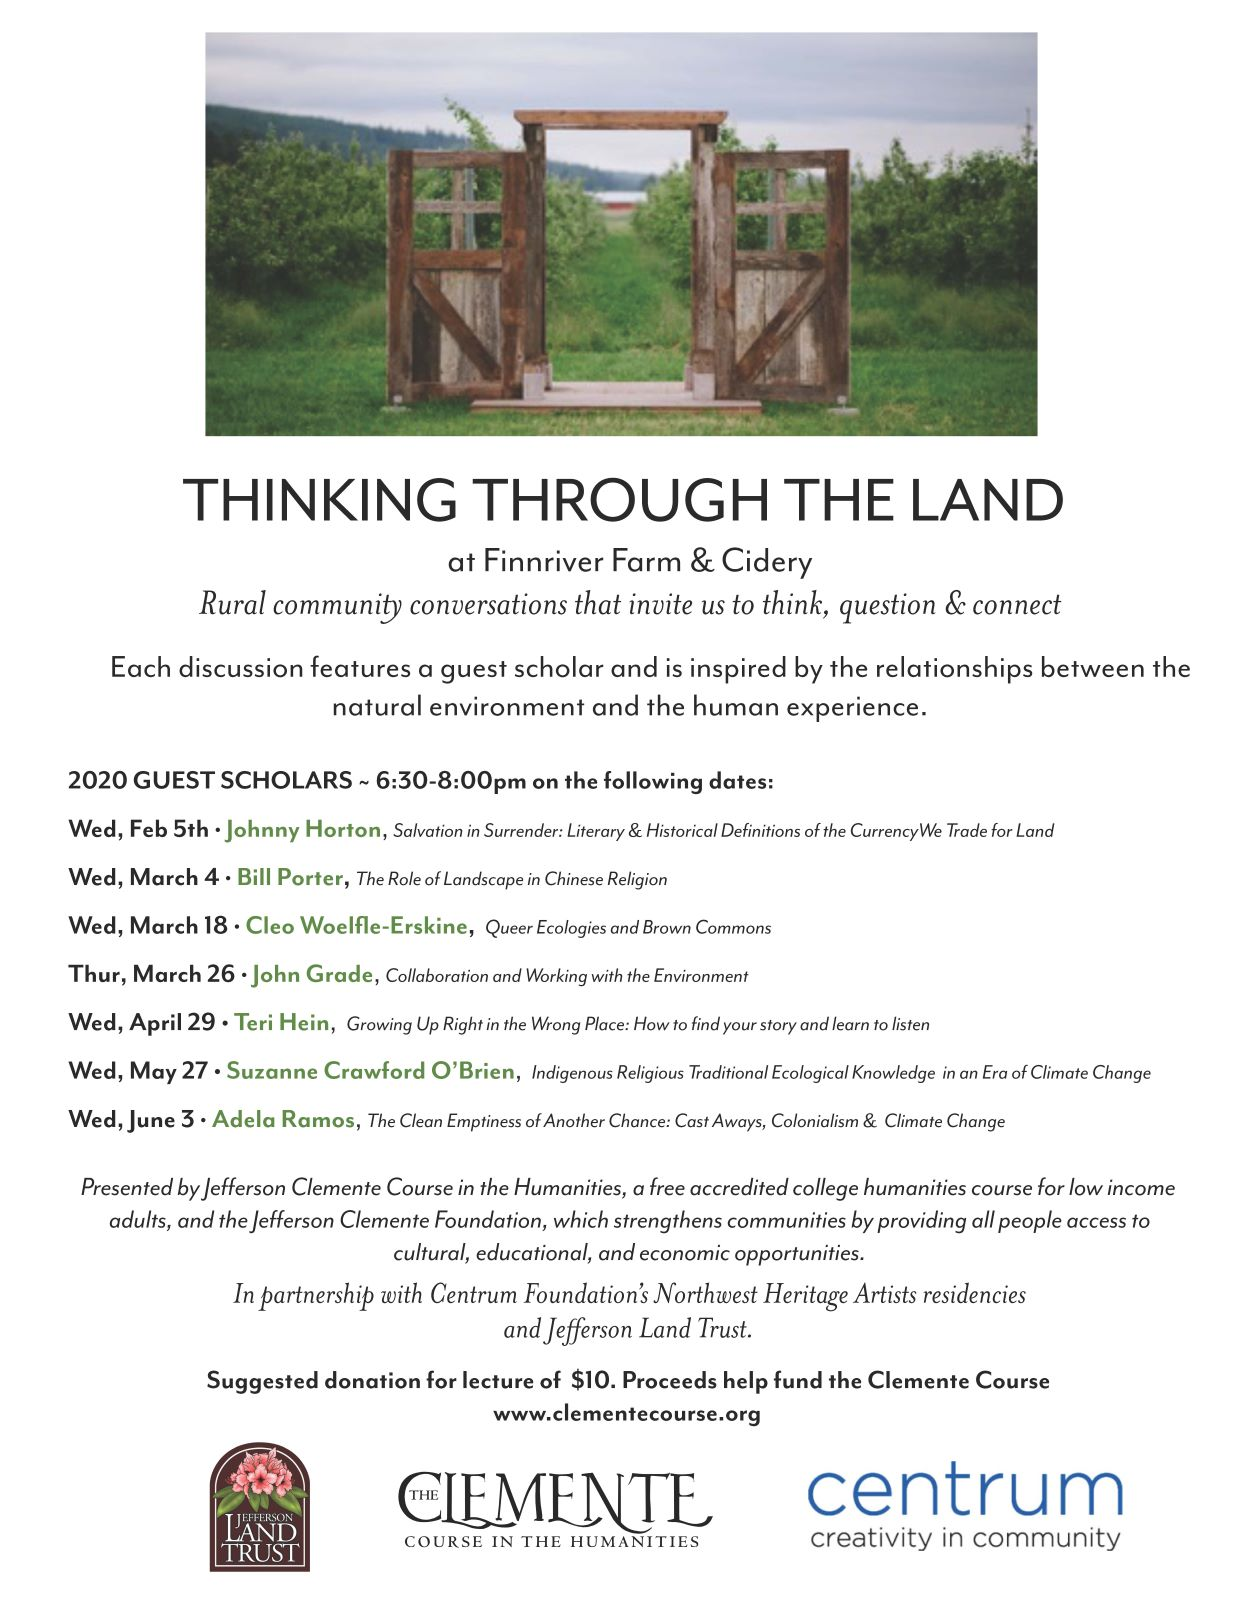 Join us and our partners Jefferson Clemente Foundation, Finnriver and Centrum in rural community conversations that invite us to think, question & connect. Each discussion features a guest scholar and is inspired by the relationships between the natural environment and the human experience. Events are from 6:30 - 8:00 pm in the Finnriver Cider Garden. Food and drink are available onsite for purchase. 2020 GUEST SCHOLARS Wed, Feb 5th • Johnny Horton, Salvation in Surrender: Literary & Historical Definitions of the Currency We Trade for Land Wed, March 4 • Bill Porter, The Role of Landscape in Chinese Religion Wed, March 18 • Cleo Woelfle-Erskine, Queer Ecologies and Brown Commons Thur, March 26 • John Grade, Collaboration and Working with the Environment Wed, April 29 • Teri Hein, Growing Up Right in the Wrong Place: How to find your story and learn to listen Wed, May 27 • Suzanne Crawford O'Brien, Indigenous Religious Traditional Ecological Knowledge in an Era of Climate Change Wed, June 3 • Adela Ramos, The Clean Emptiness of Another Chance: Cast Aways, Colonialism & Climate Change Presented by our partner Jefferson Clemente Course in the Humanities, a free accredited college humanities course for low income adults, and the Jefferson Clemente Foundation, which strengthens communities by providing all people access to cultural, educational, and economic opportunities. In partnership with Centrum Foundation's Northwest Heritage Artists residencies and Jefferson Land Trust Suggested donation for lecture of $10. Proceeds help fund the Jefferson Clemente Course.